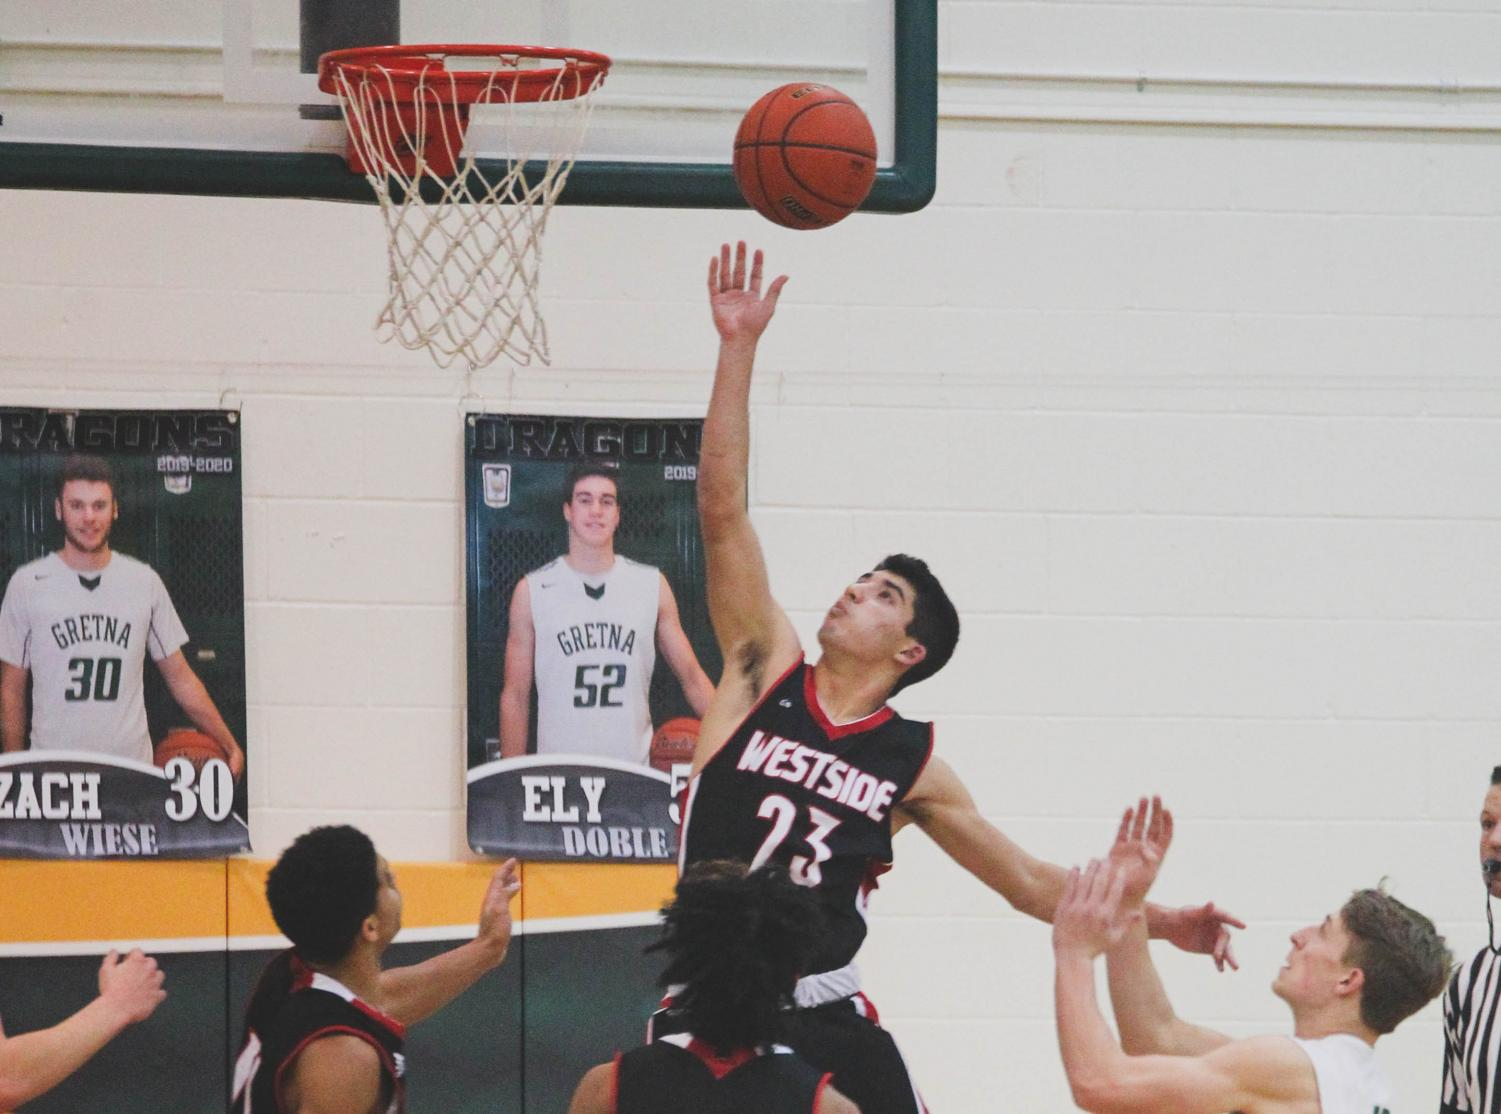 Westside sophomore Dominic Rezac goes to the hoop in a game against Gretna.